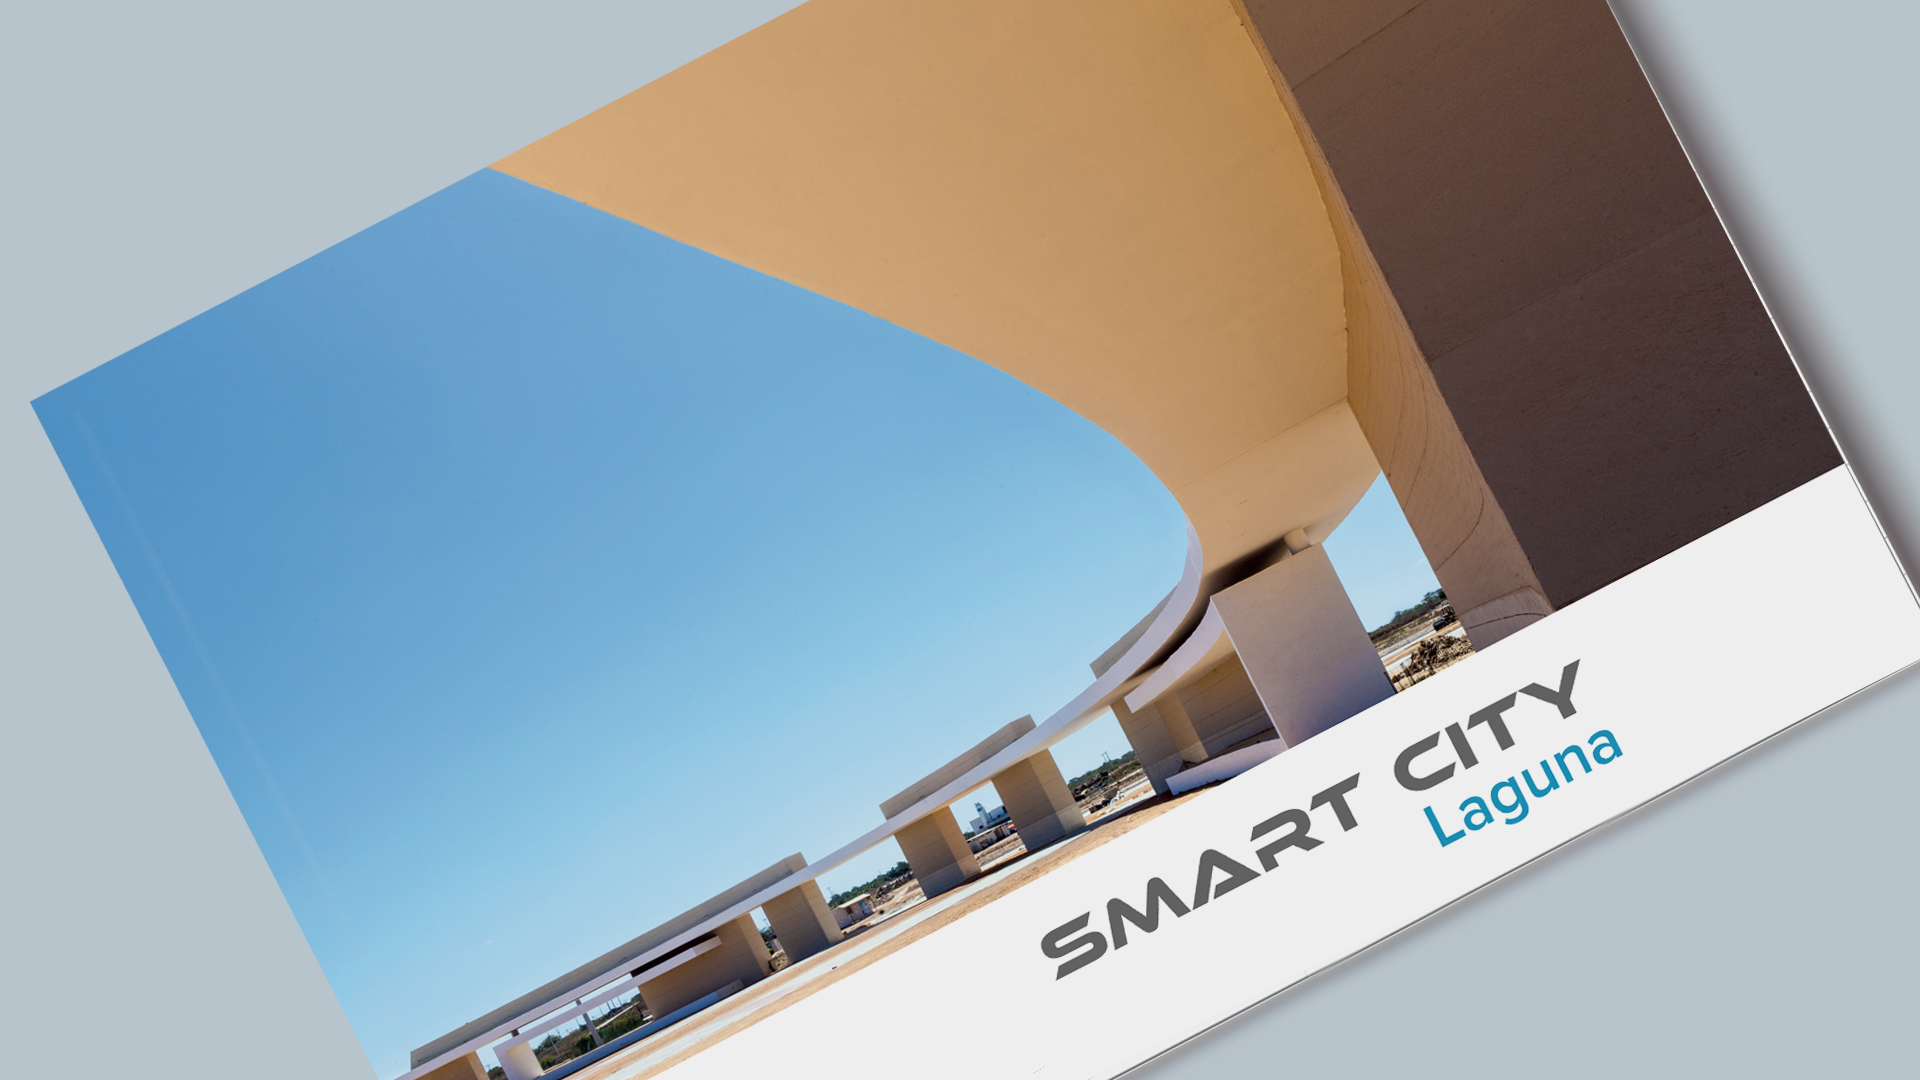 Smart City Laguna